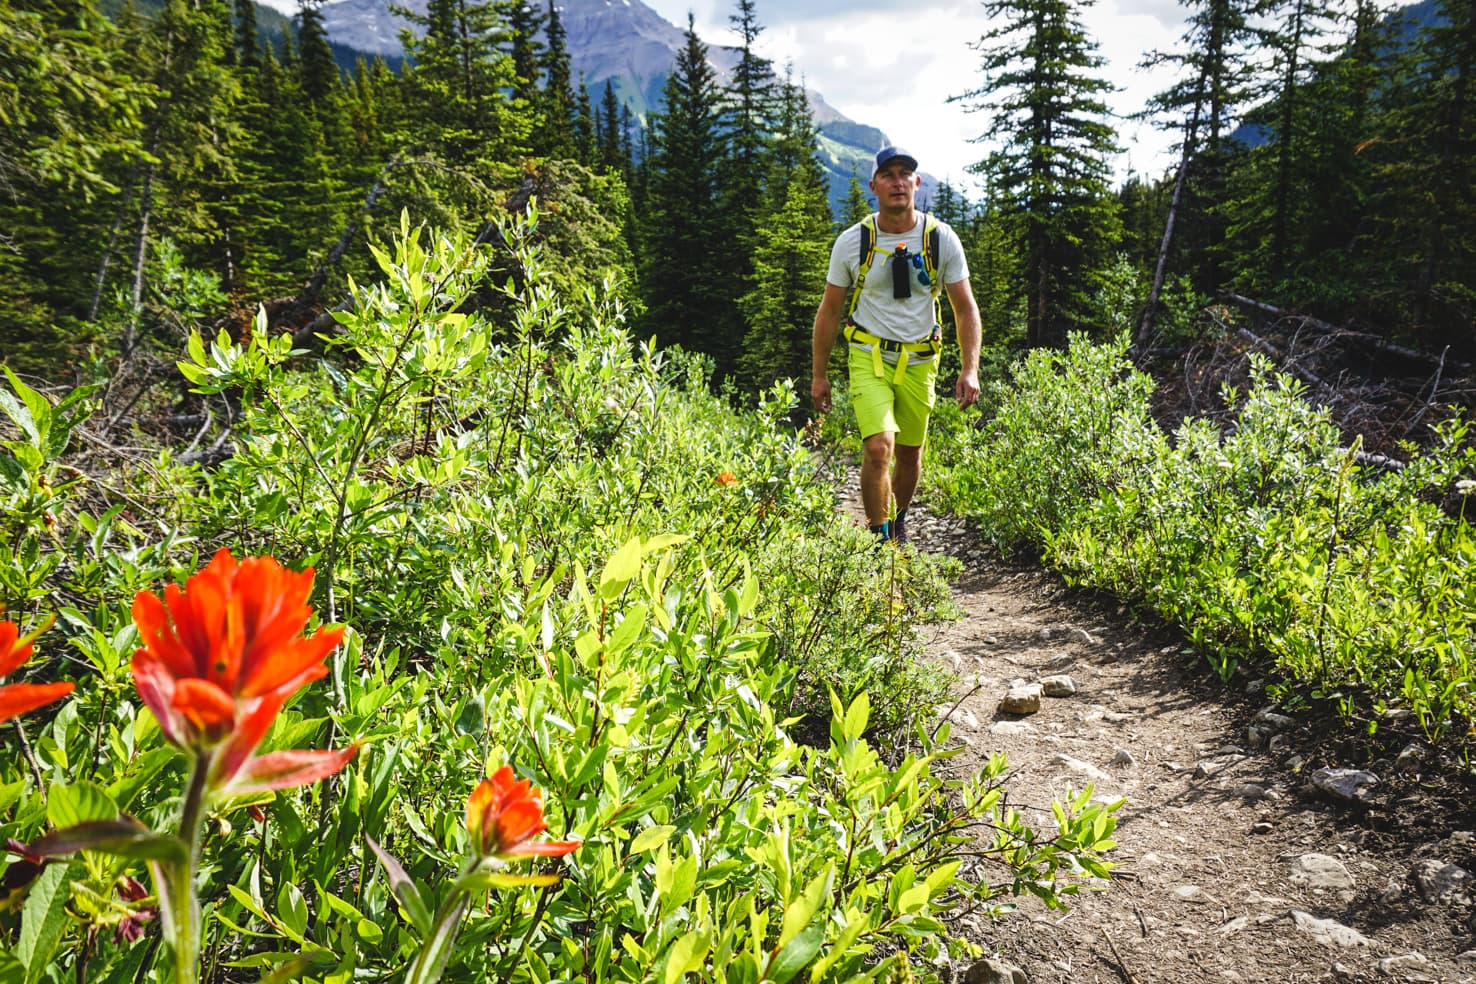 Banff Packing List - Healy Pass Hike in Banff National Park